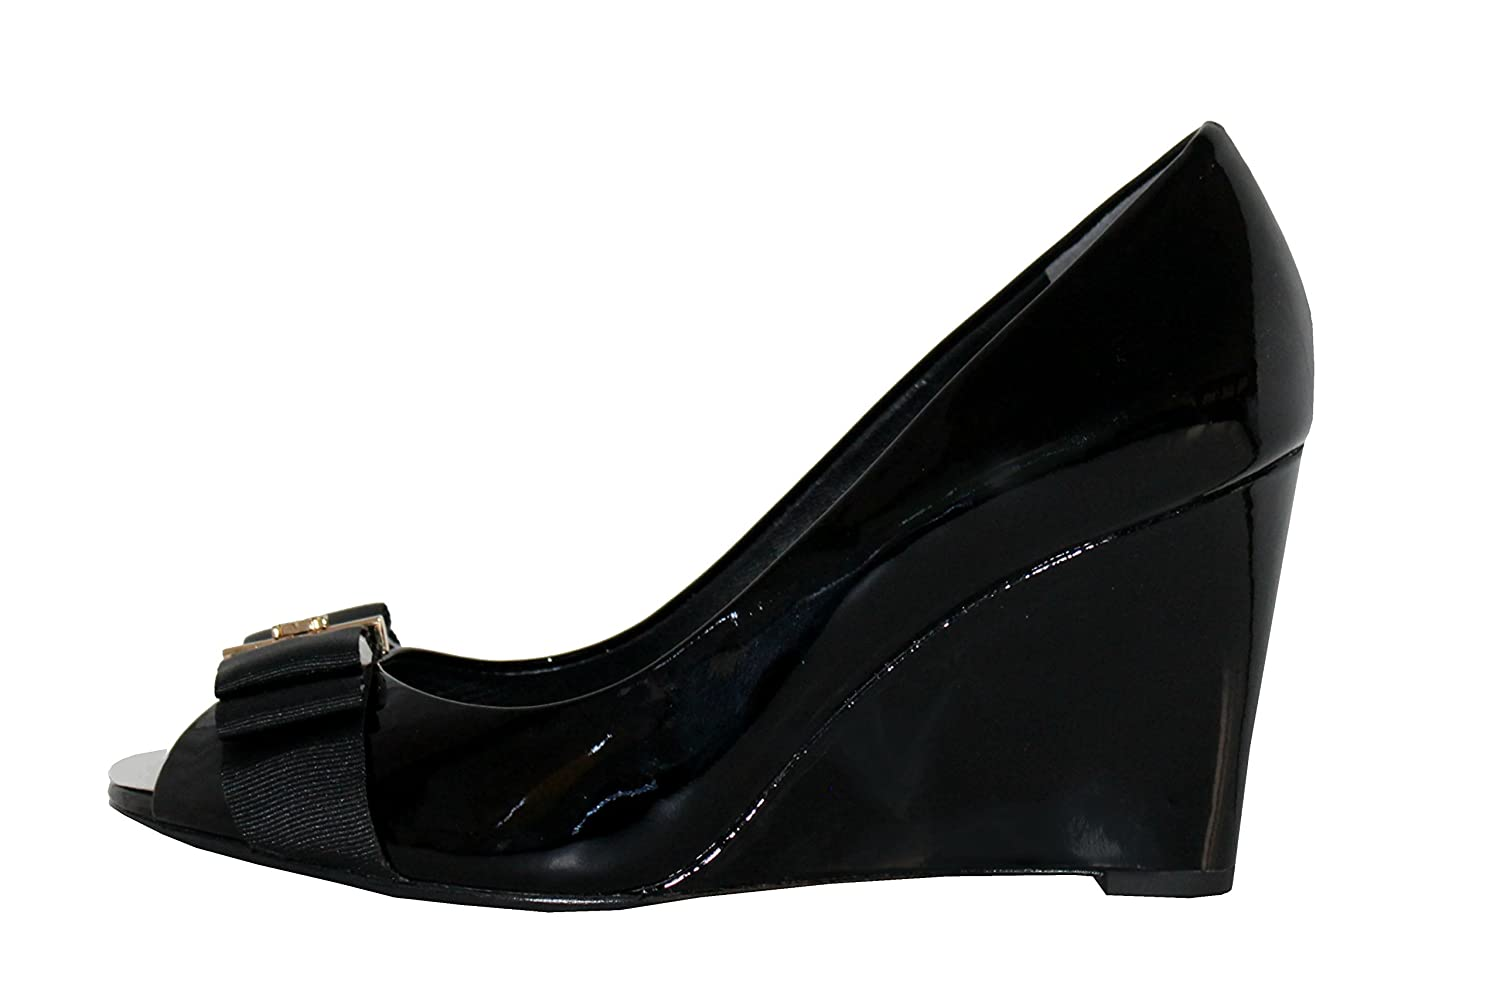 e5c8998f010e Tory Burch Black Trudy 85mm Open Toe Patent Leather Wedges (8.5)   Amazon.co.uk  Shoes   Bags